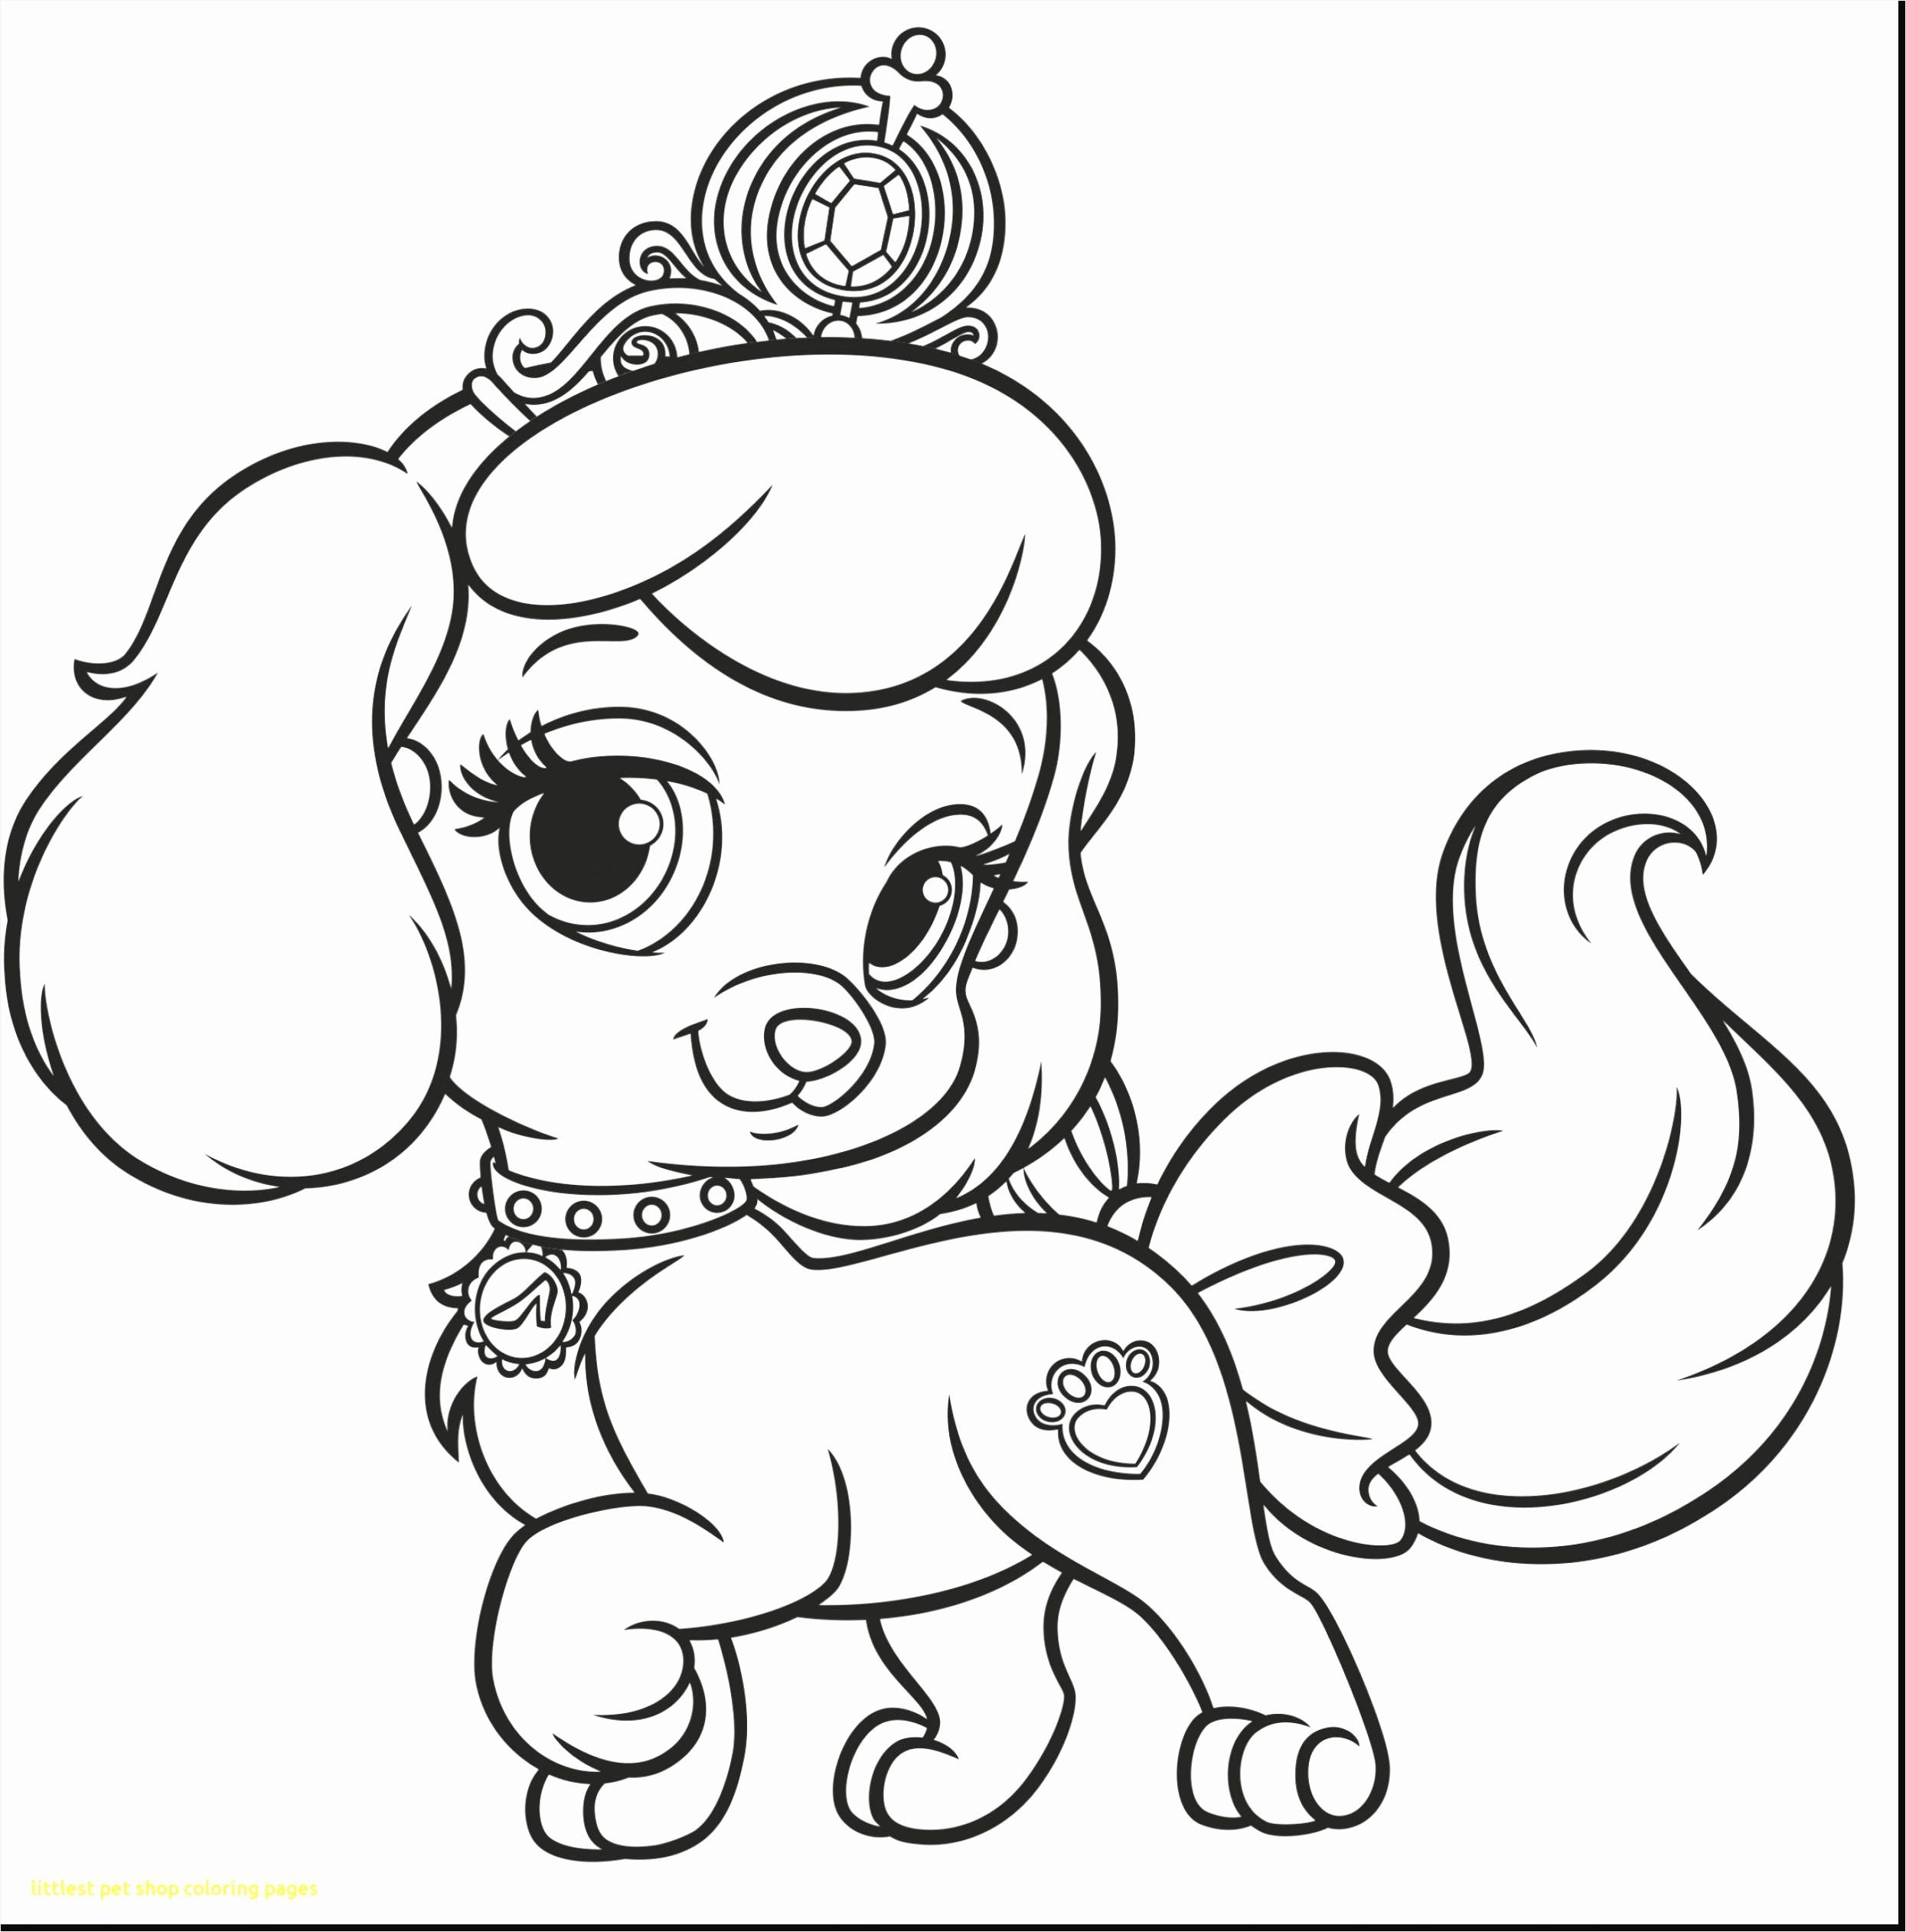 Best Coloring Book Animals Unique Most Creative Lps Coloring Pages